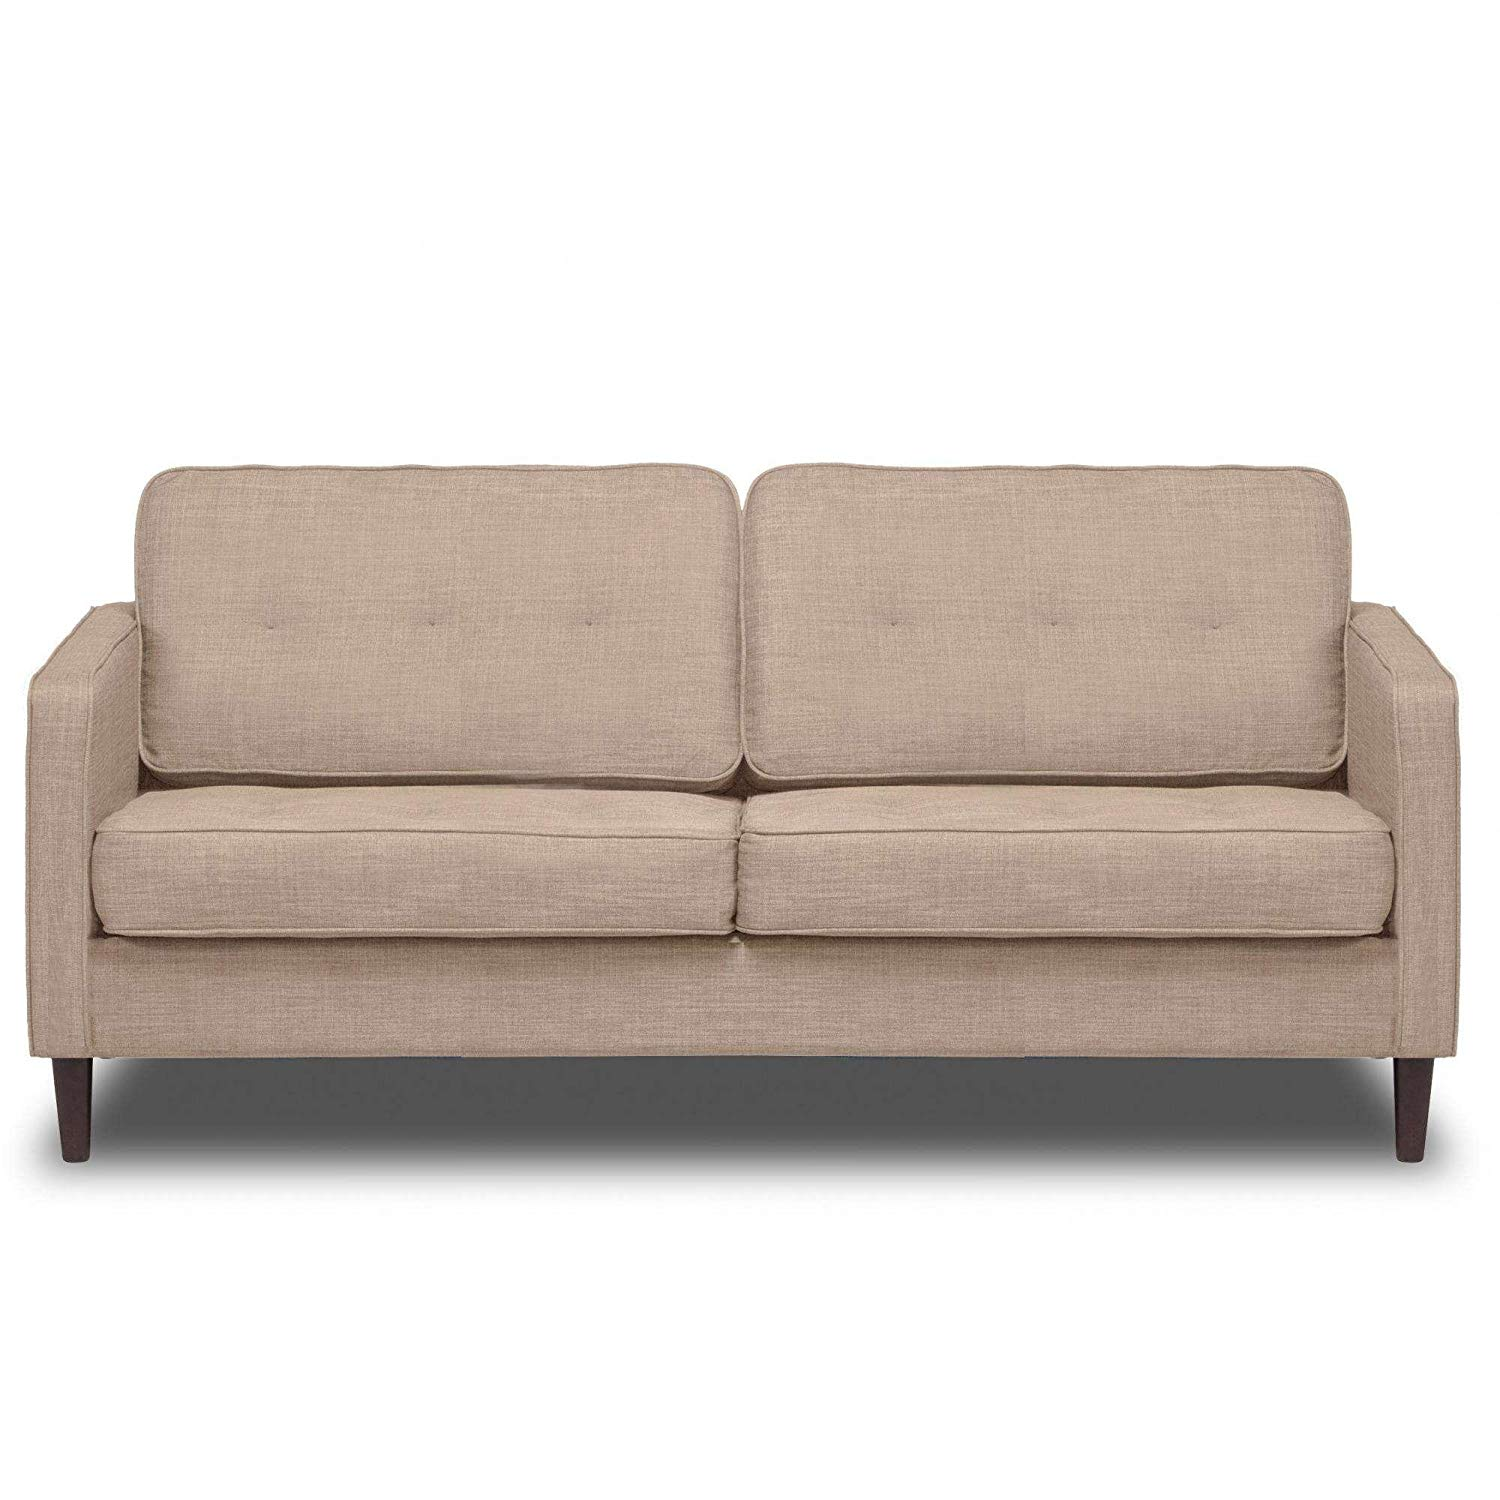 """Buckwheat 66"""" Upholstered Sofa, Pocket Coil Seat Cushions, Solid Wood Legs, Hardwood Solids, Metal Seat Frame, Removable Slip Cover, Bundle with Our Expert Guide with Tips for Home Arrangement"""